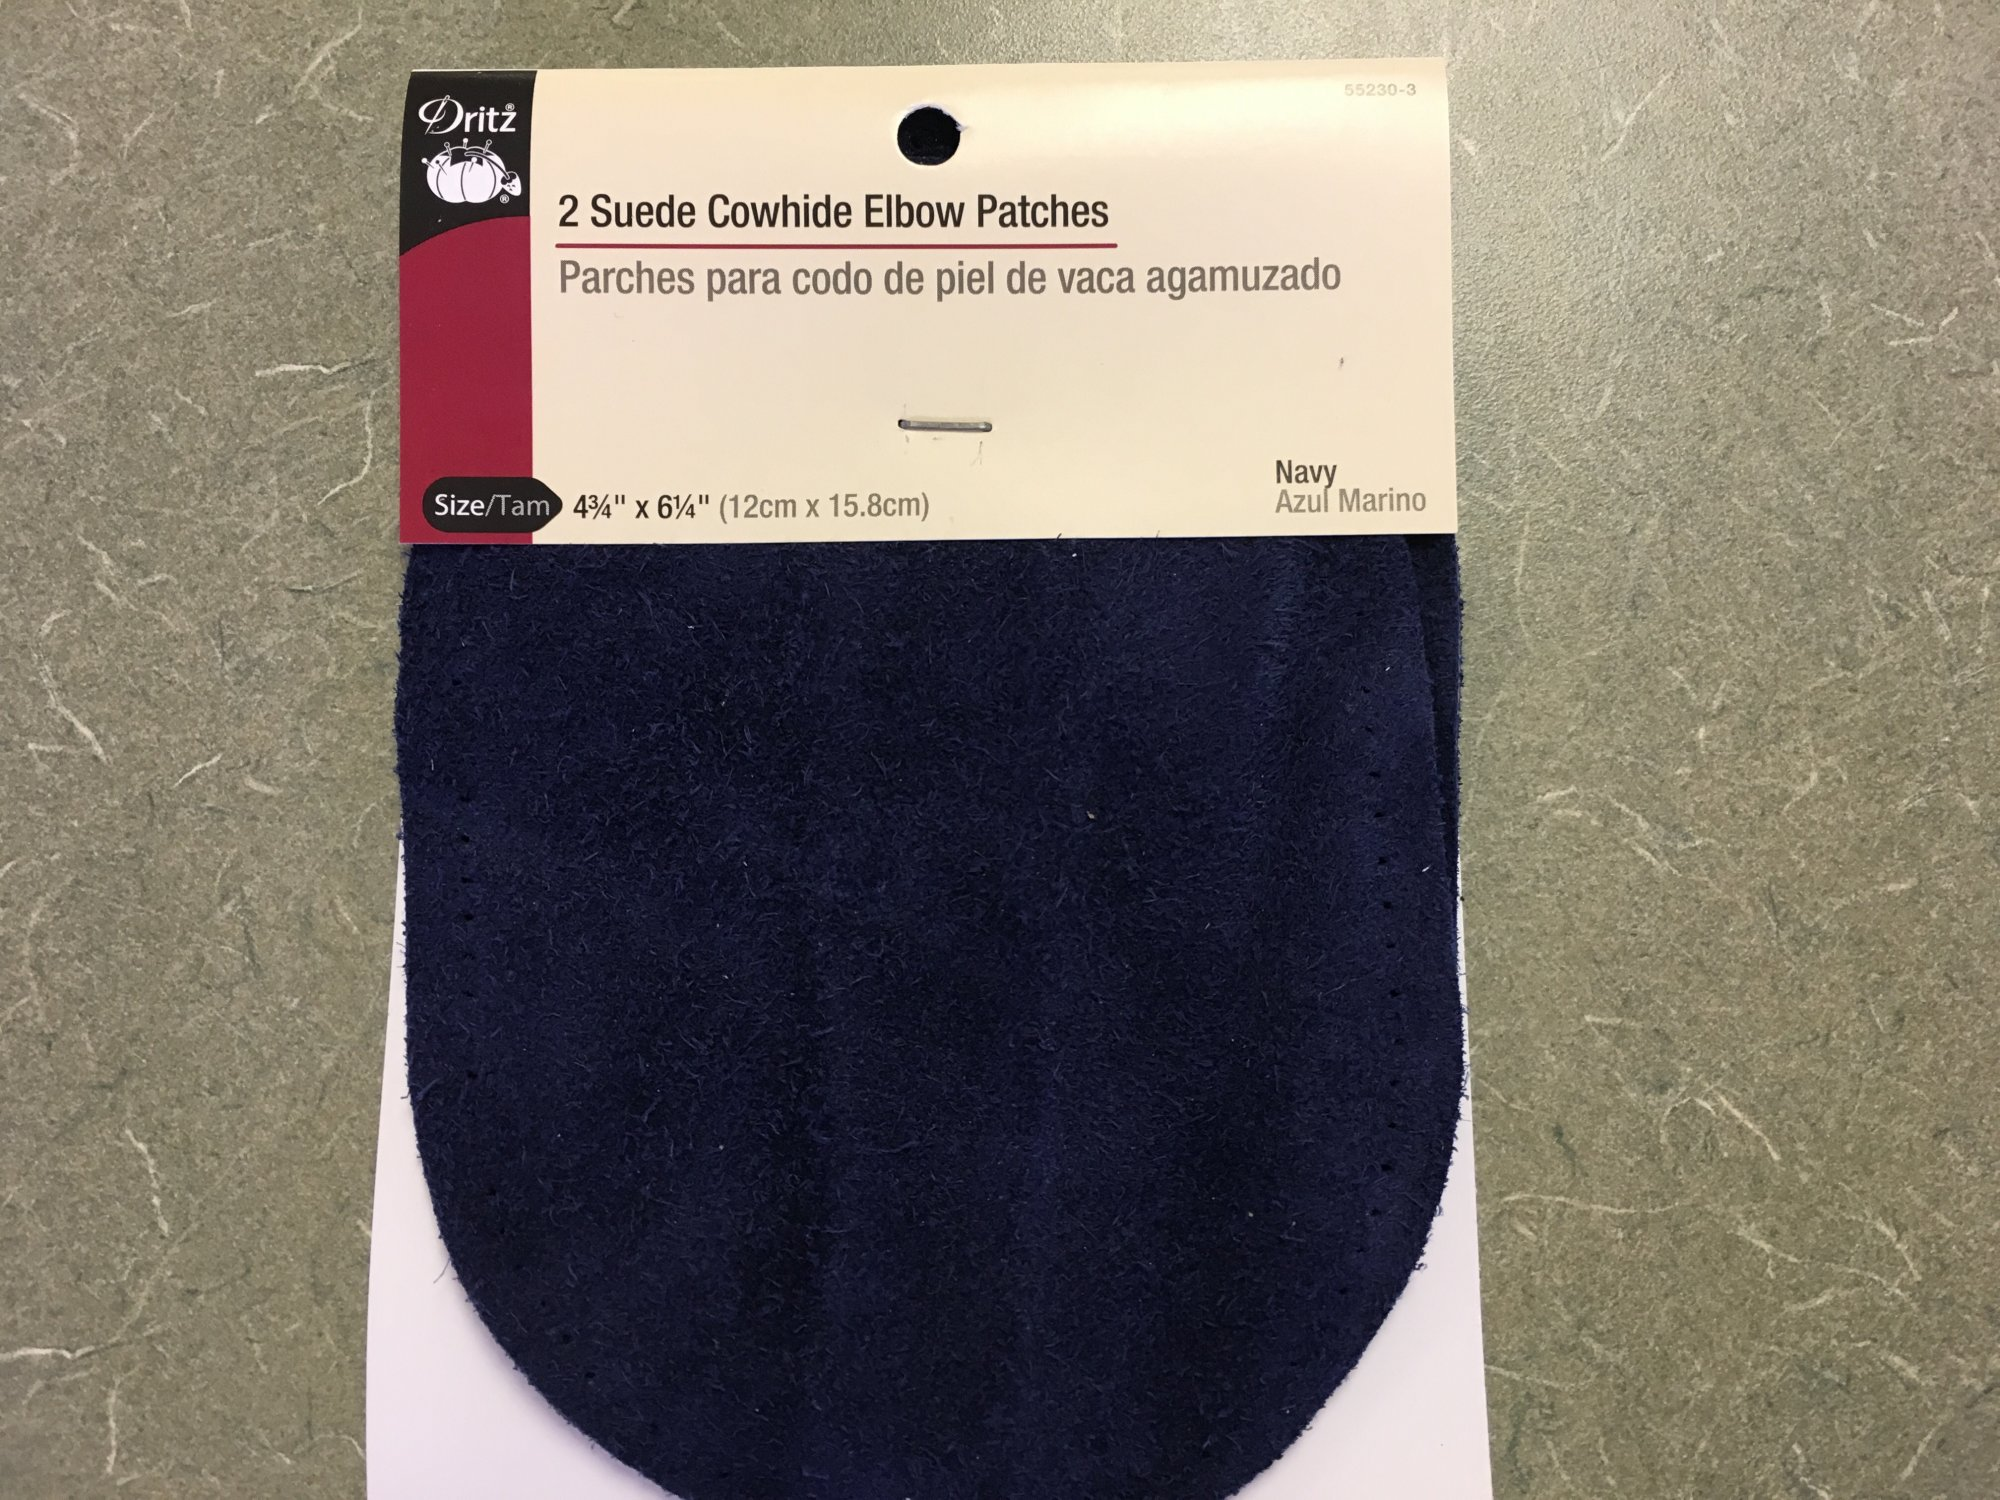 Navy 2 Suede Cowhide Elbow Patches Dritz. 552303